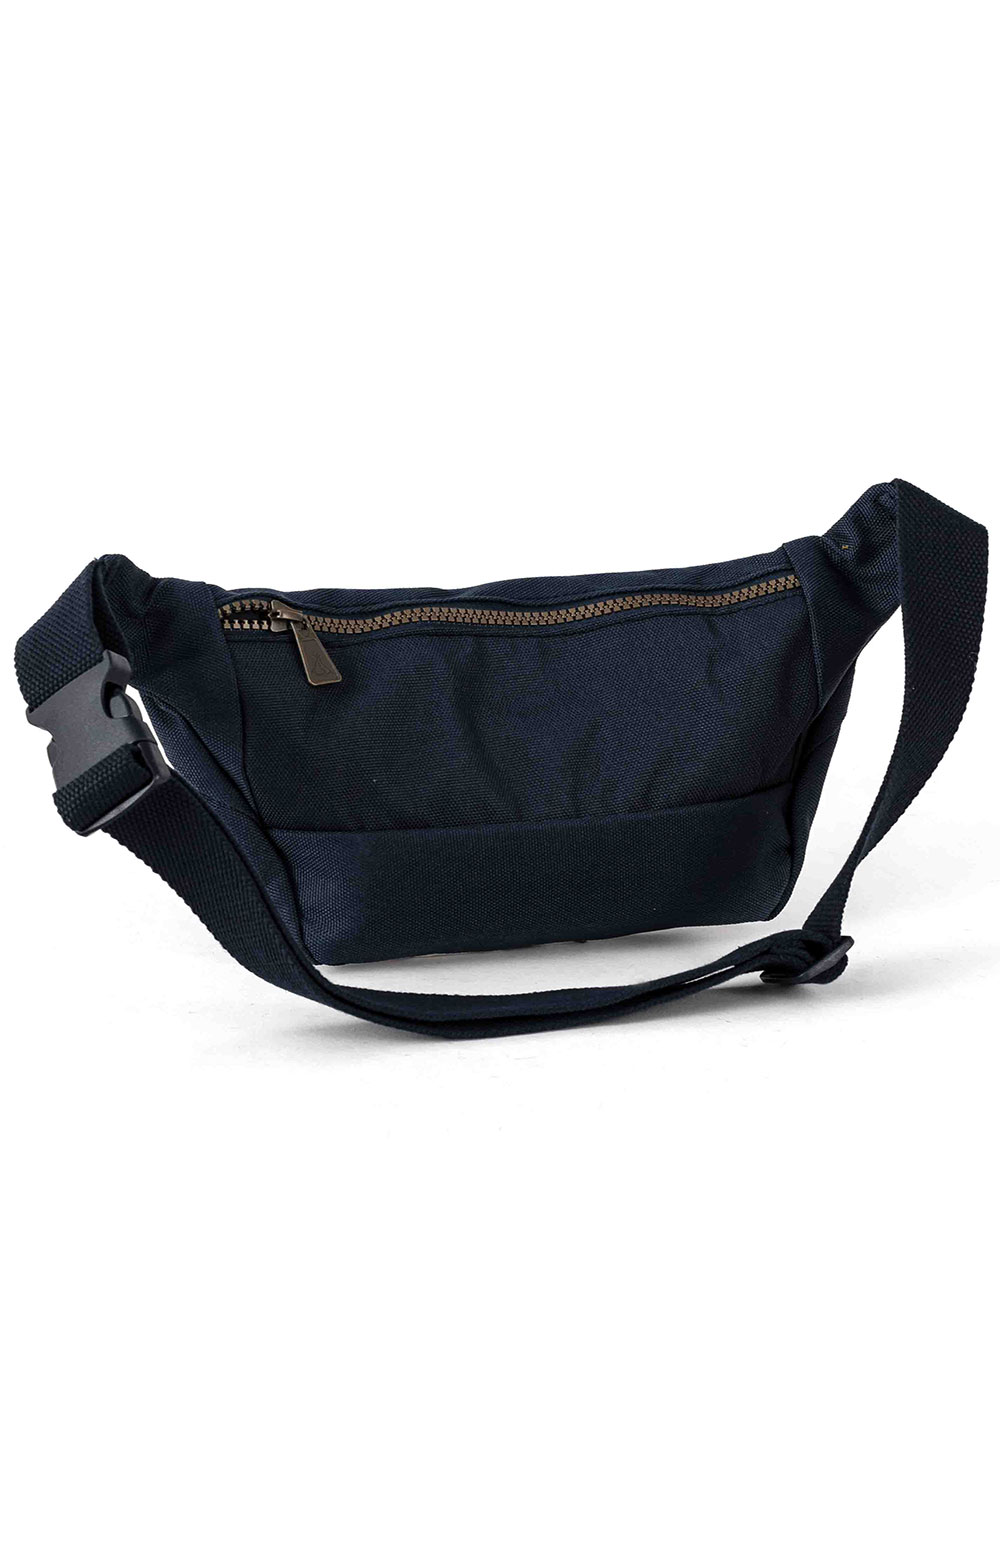 Canopy Canvas Waist Pack - Falcon Cove Sunset  3